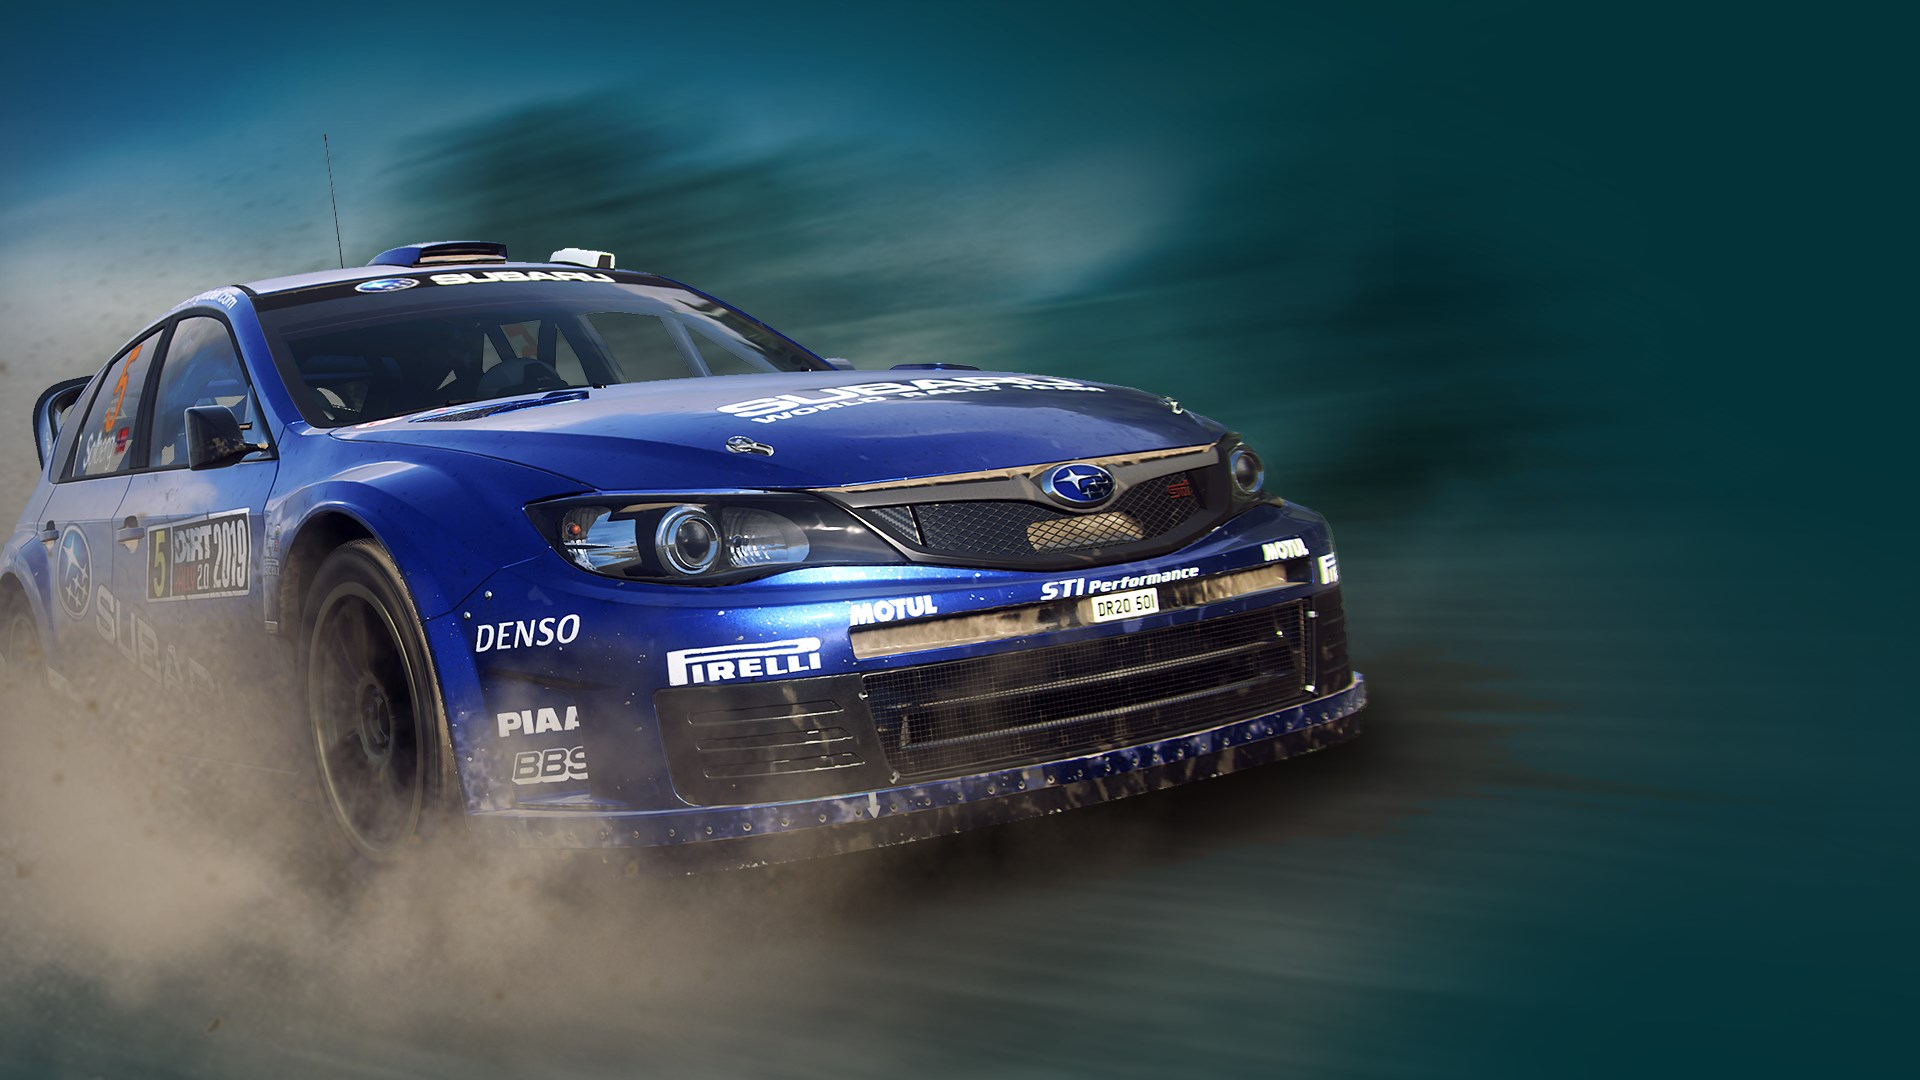 DiRT Rally 2.0 - Subaru Impreza